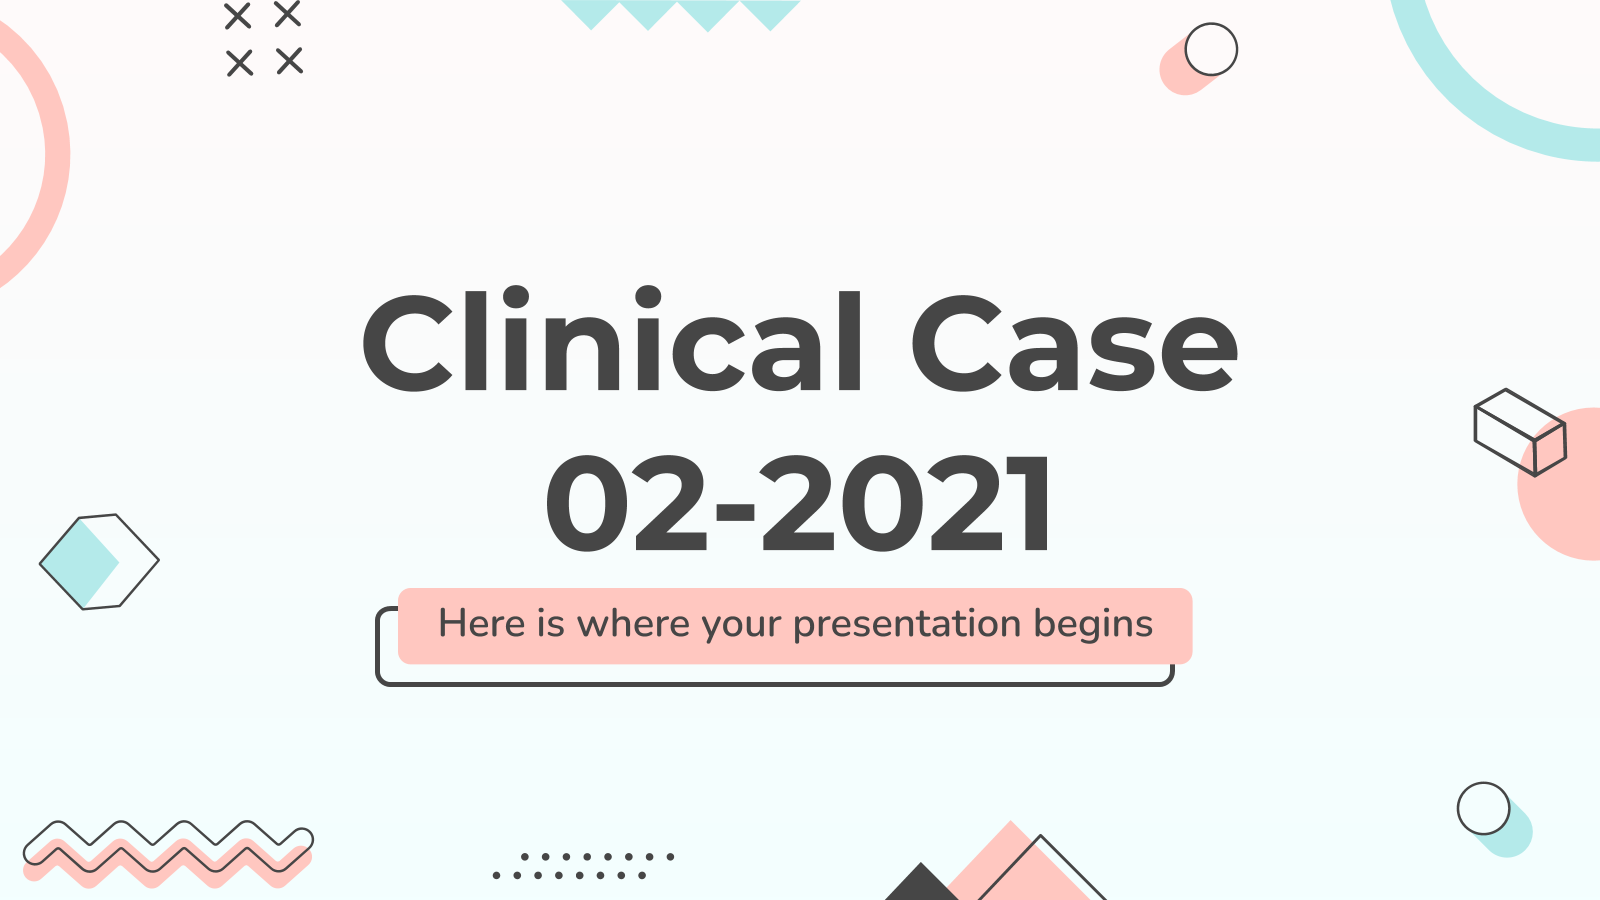 Clinical Case 02-2021 presentation template